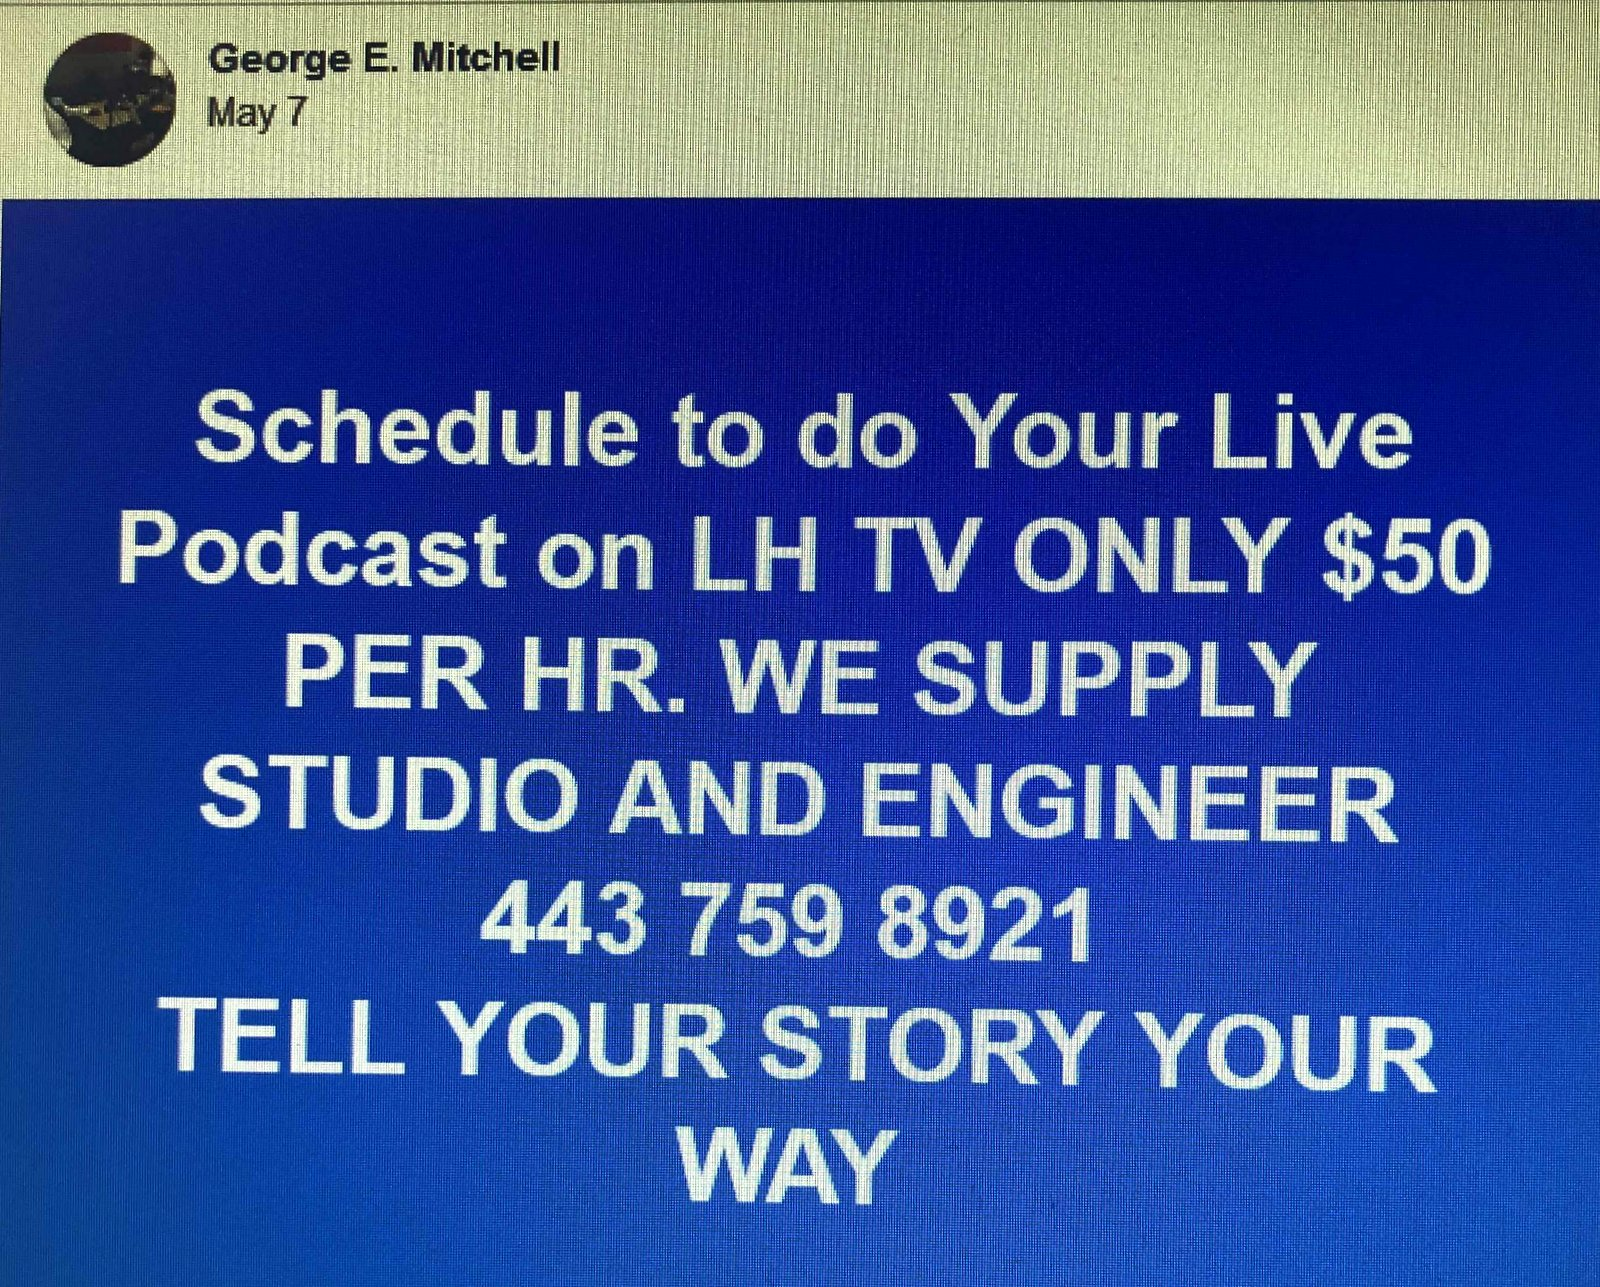 Mitchell offers $50-an-hour podcasts, one of many commercial ventures that he has established in the city-owned building. (Facebook)